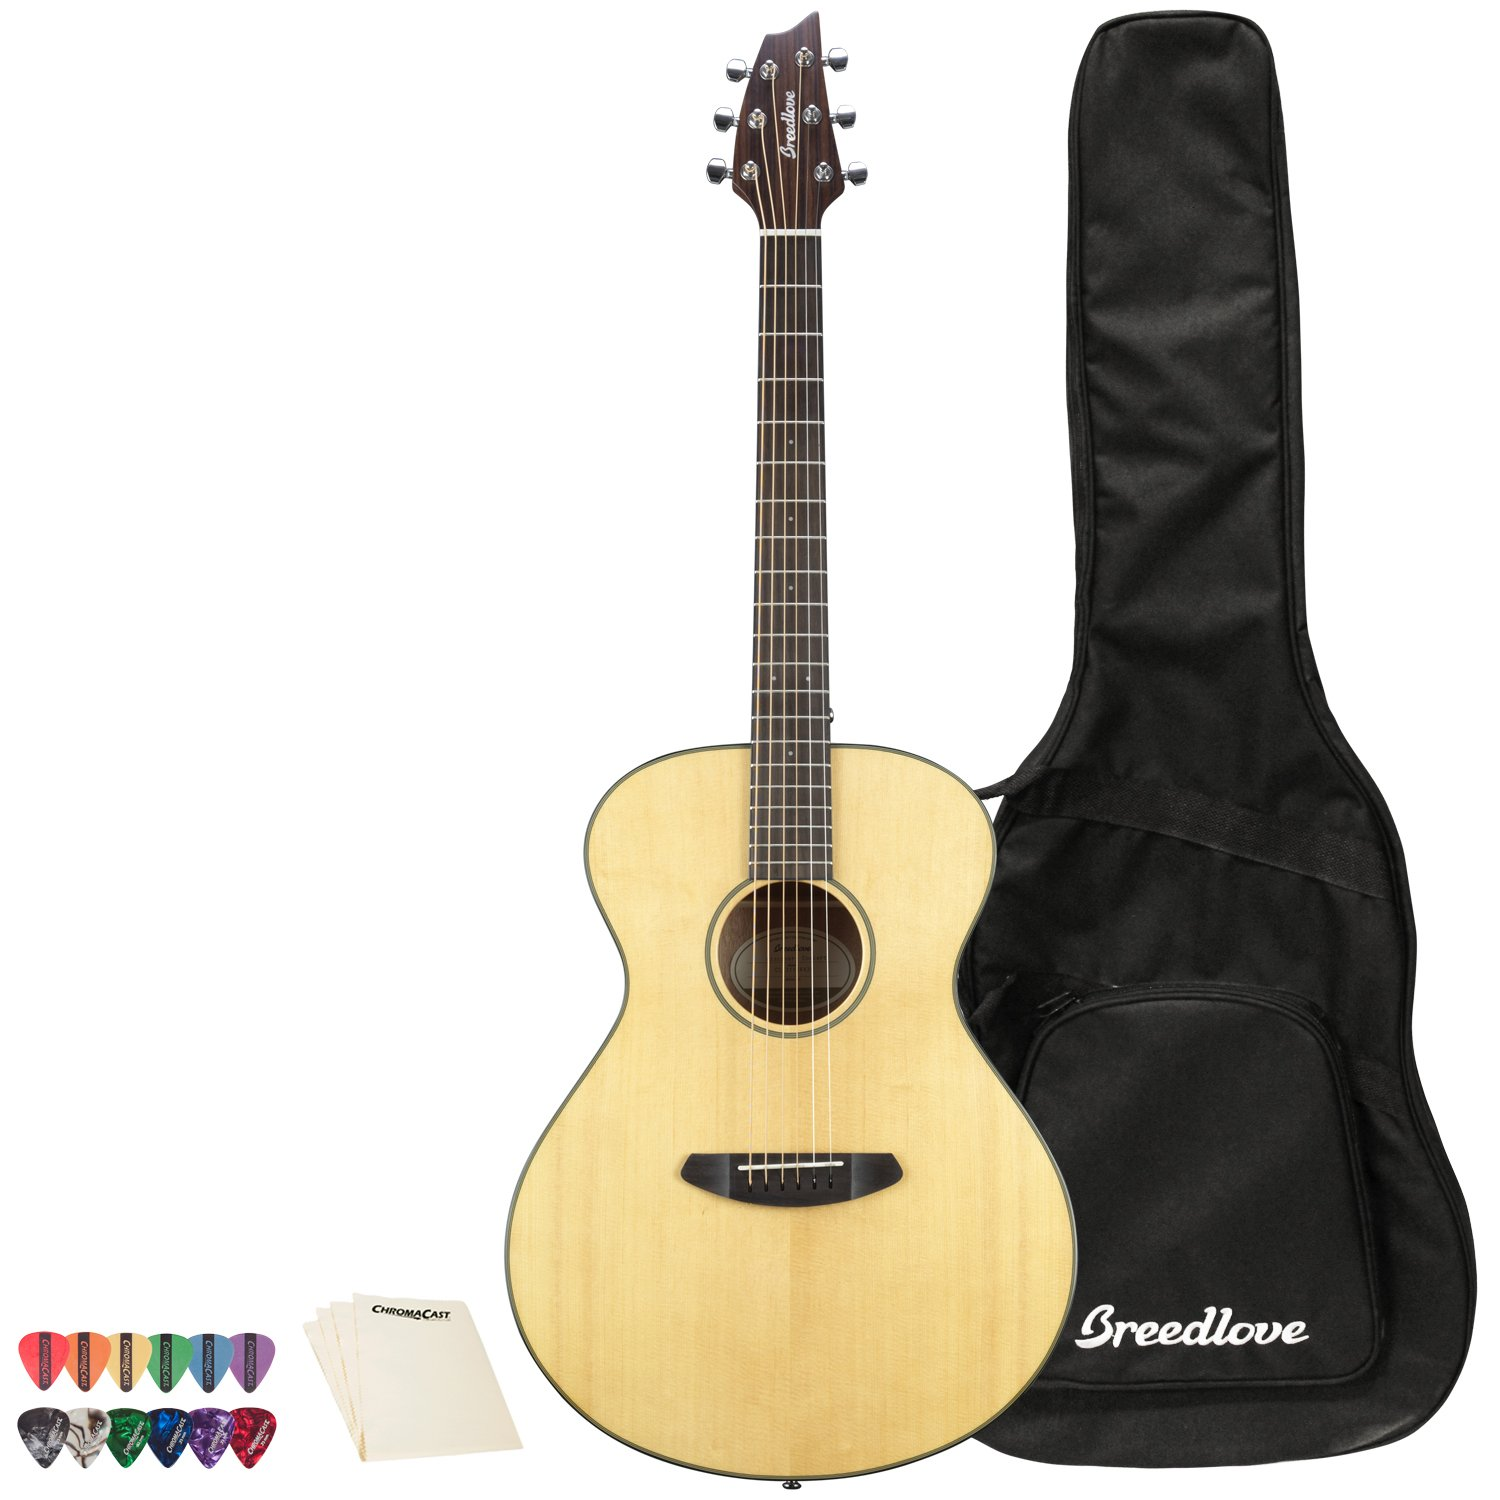 Breedlove Discovery Series 6-String Concertina Sitka-Mahogany Acoustic Guitar with ChromaCast 12 Pick Sampler and Polish Cloth, Right Handed(DSCA01SSMA-KIT-1) by Breedlove